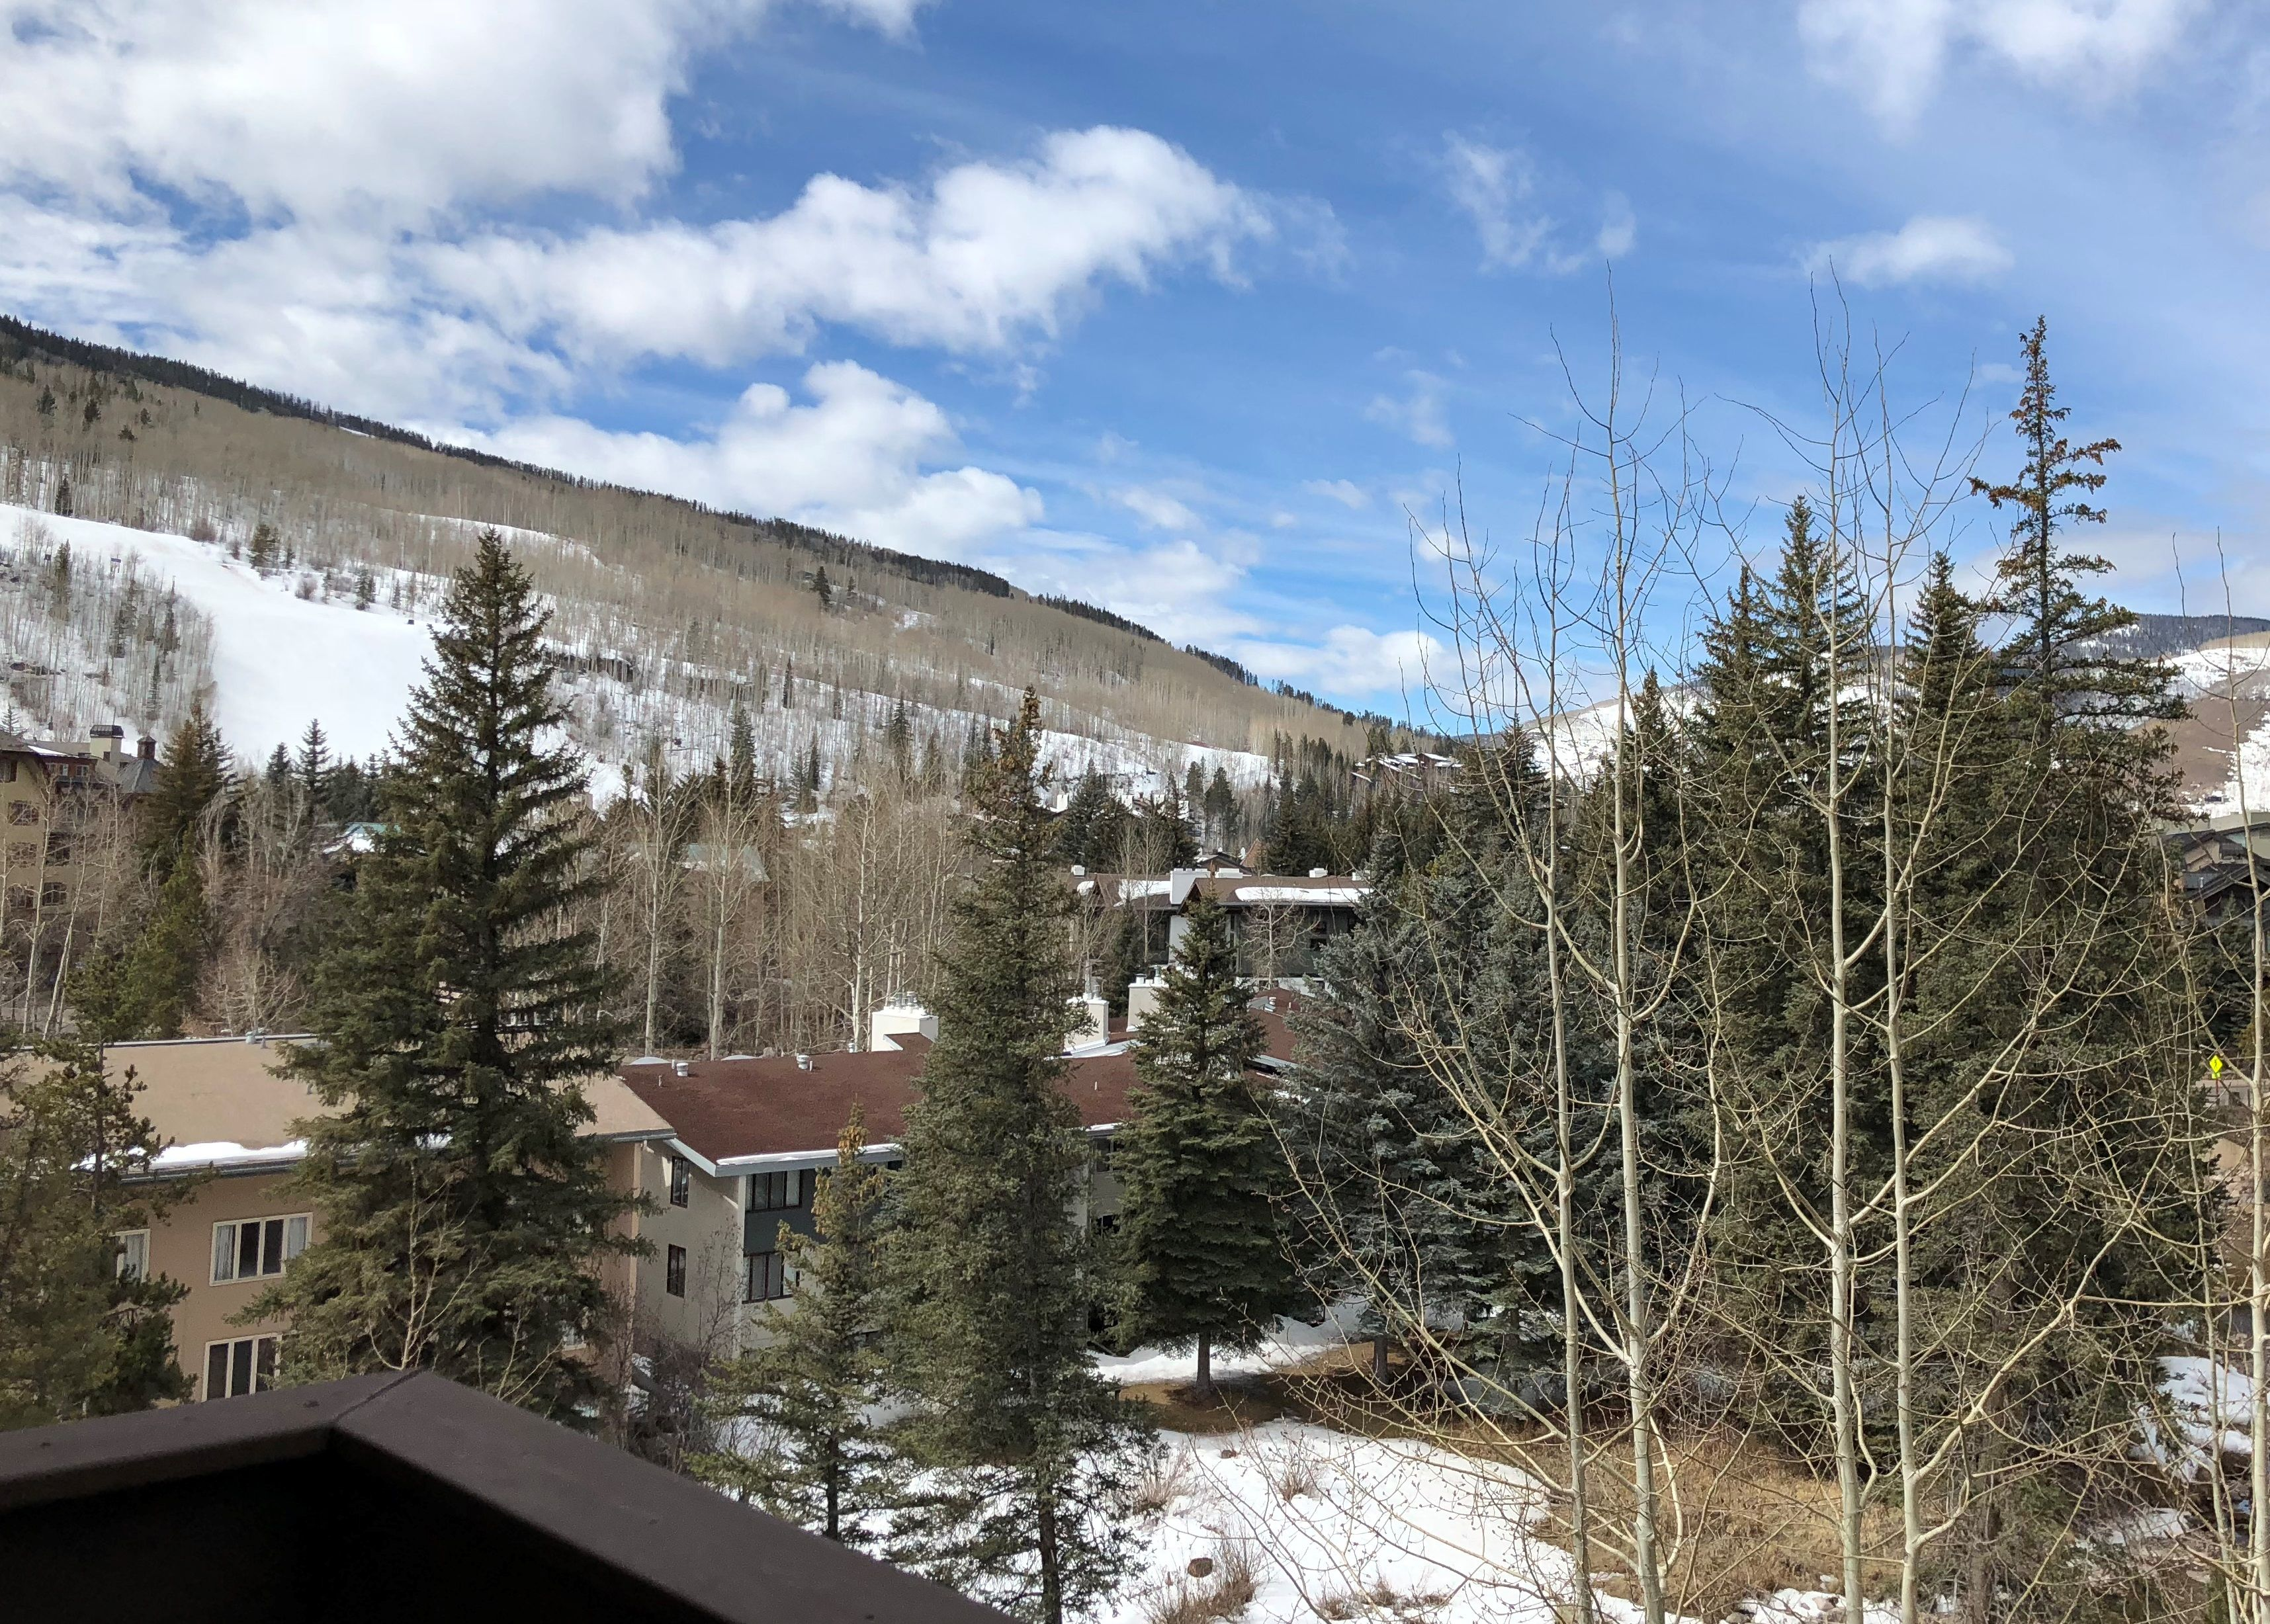 442 S Frontage Road E # B306 Vail, CO 81657